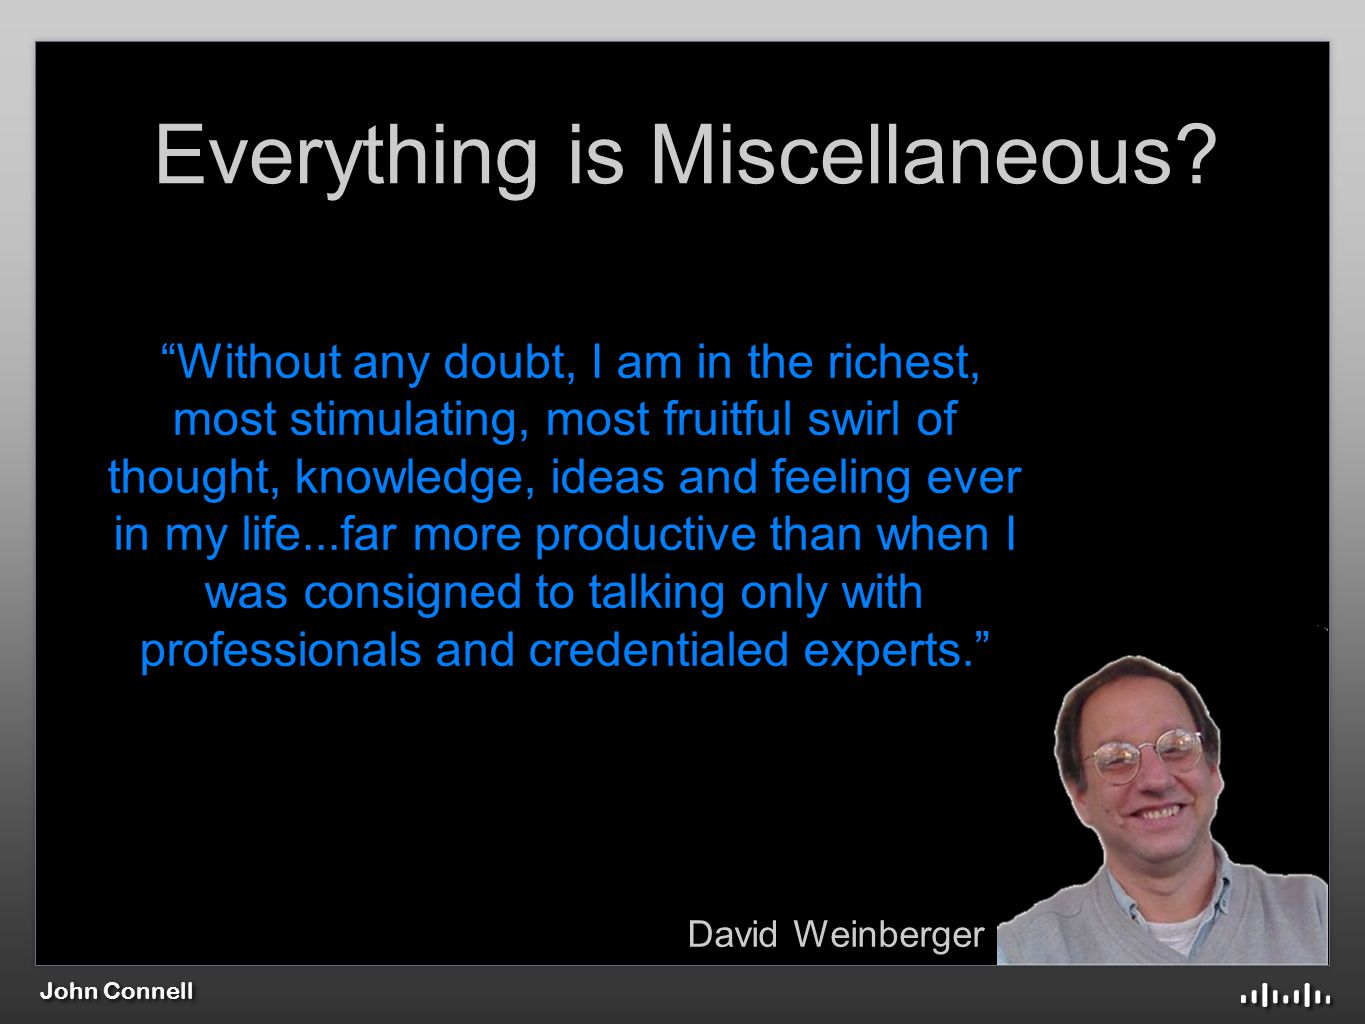 John Connell David Weinberger Everything is Miscellaneous.